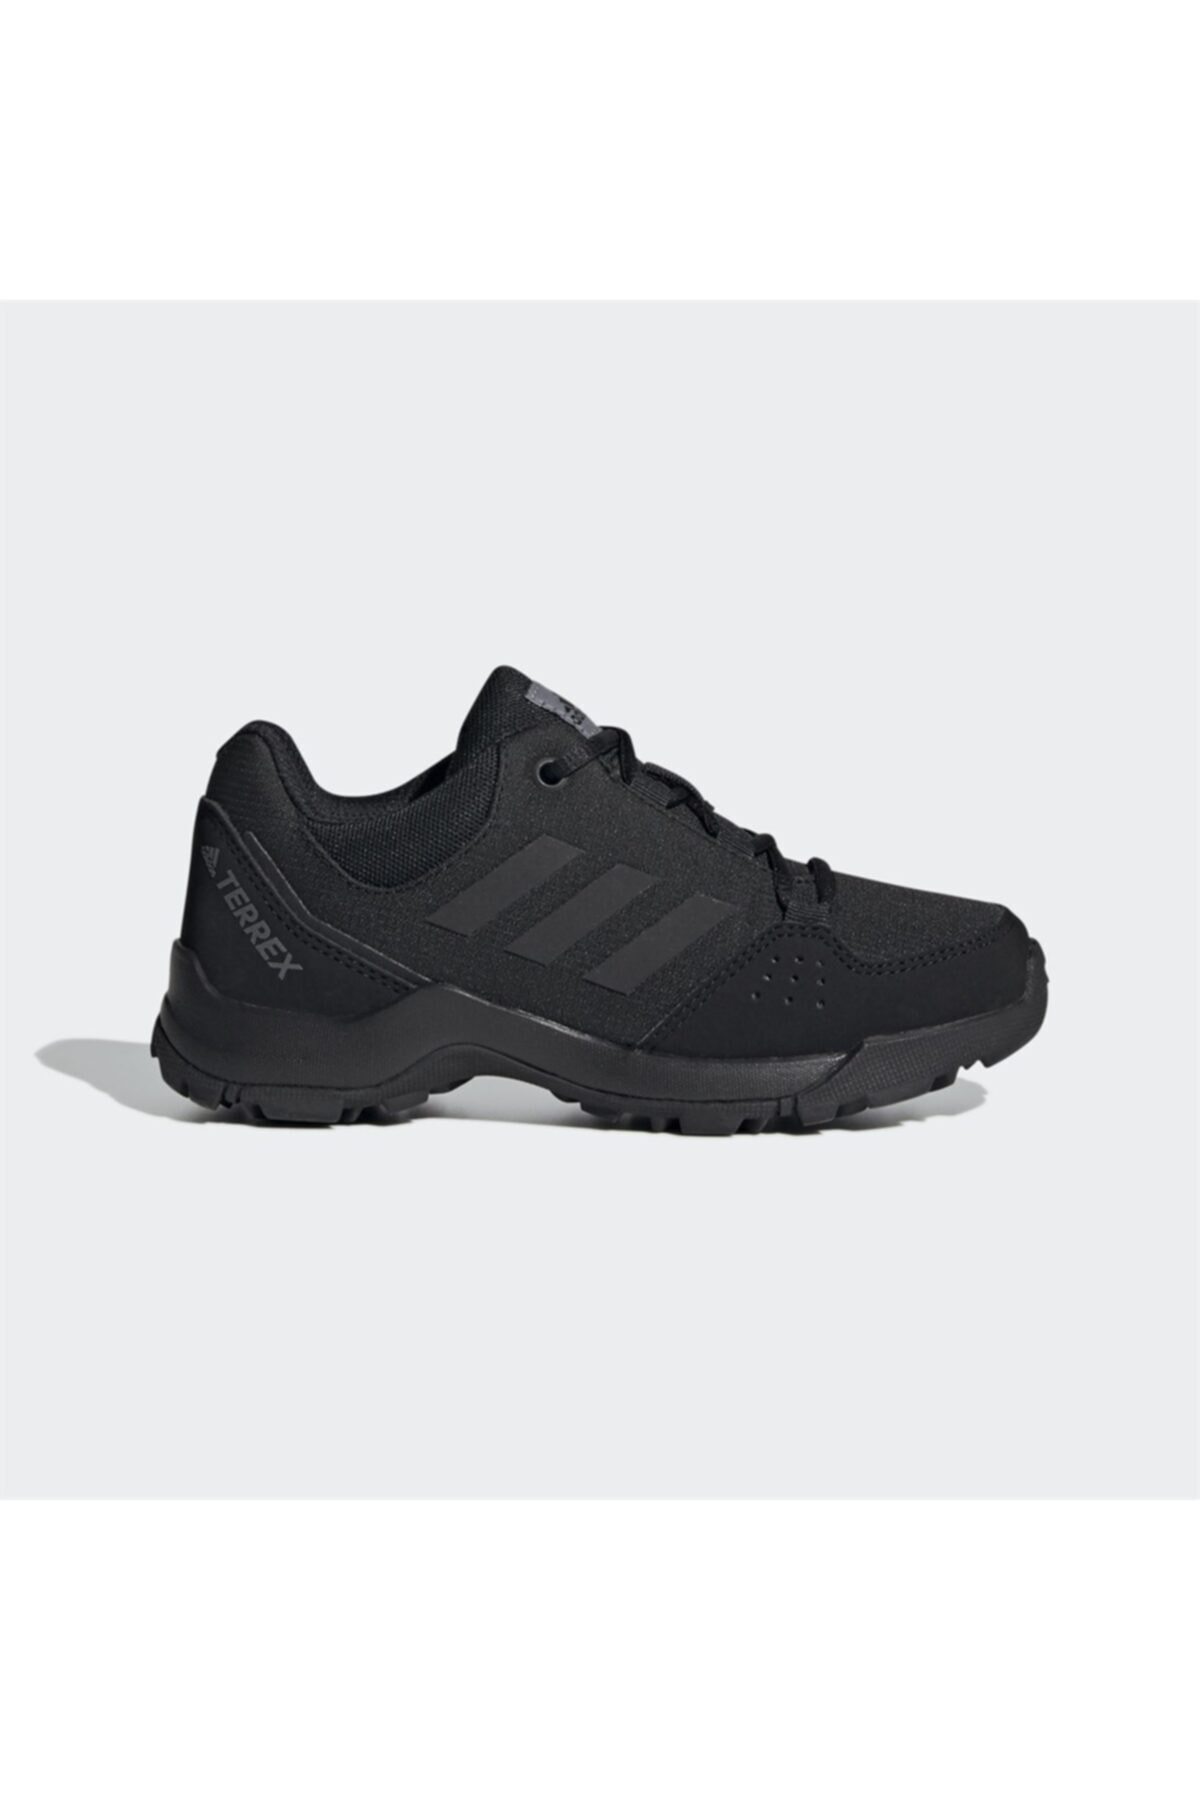 adidas Terrex Hyperhiker Low Hiking Outdoor Ayakkabı 1